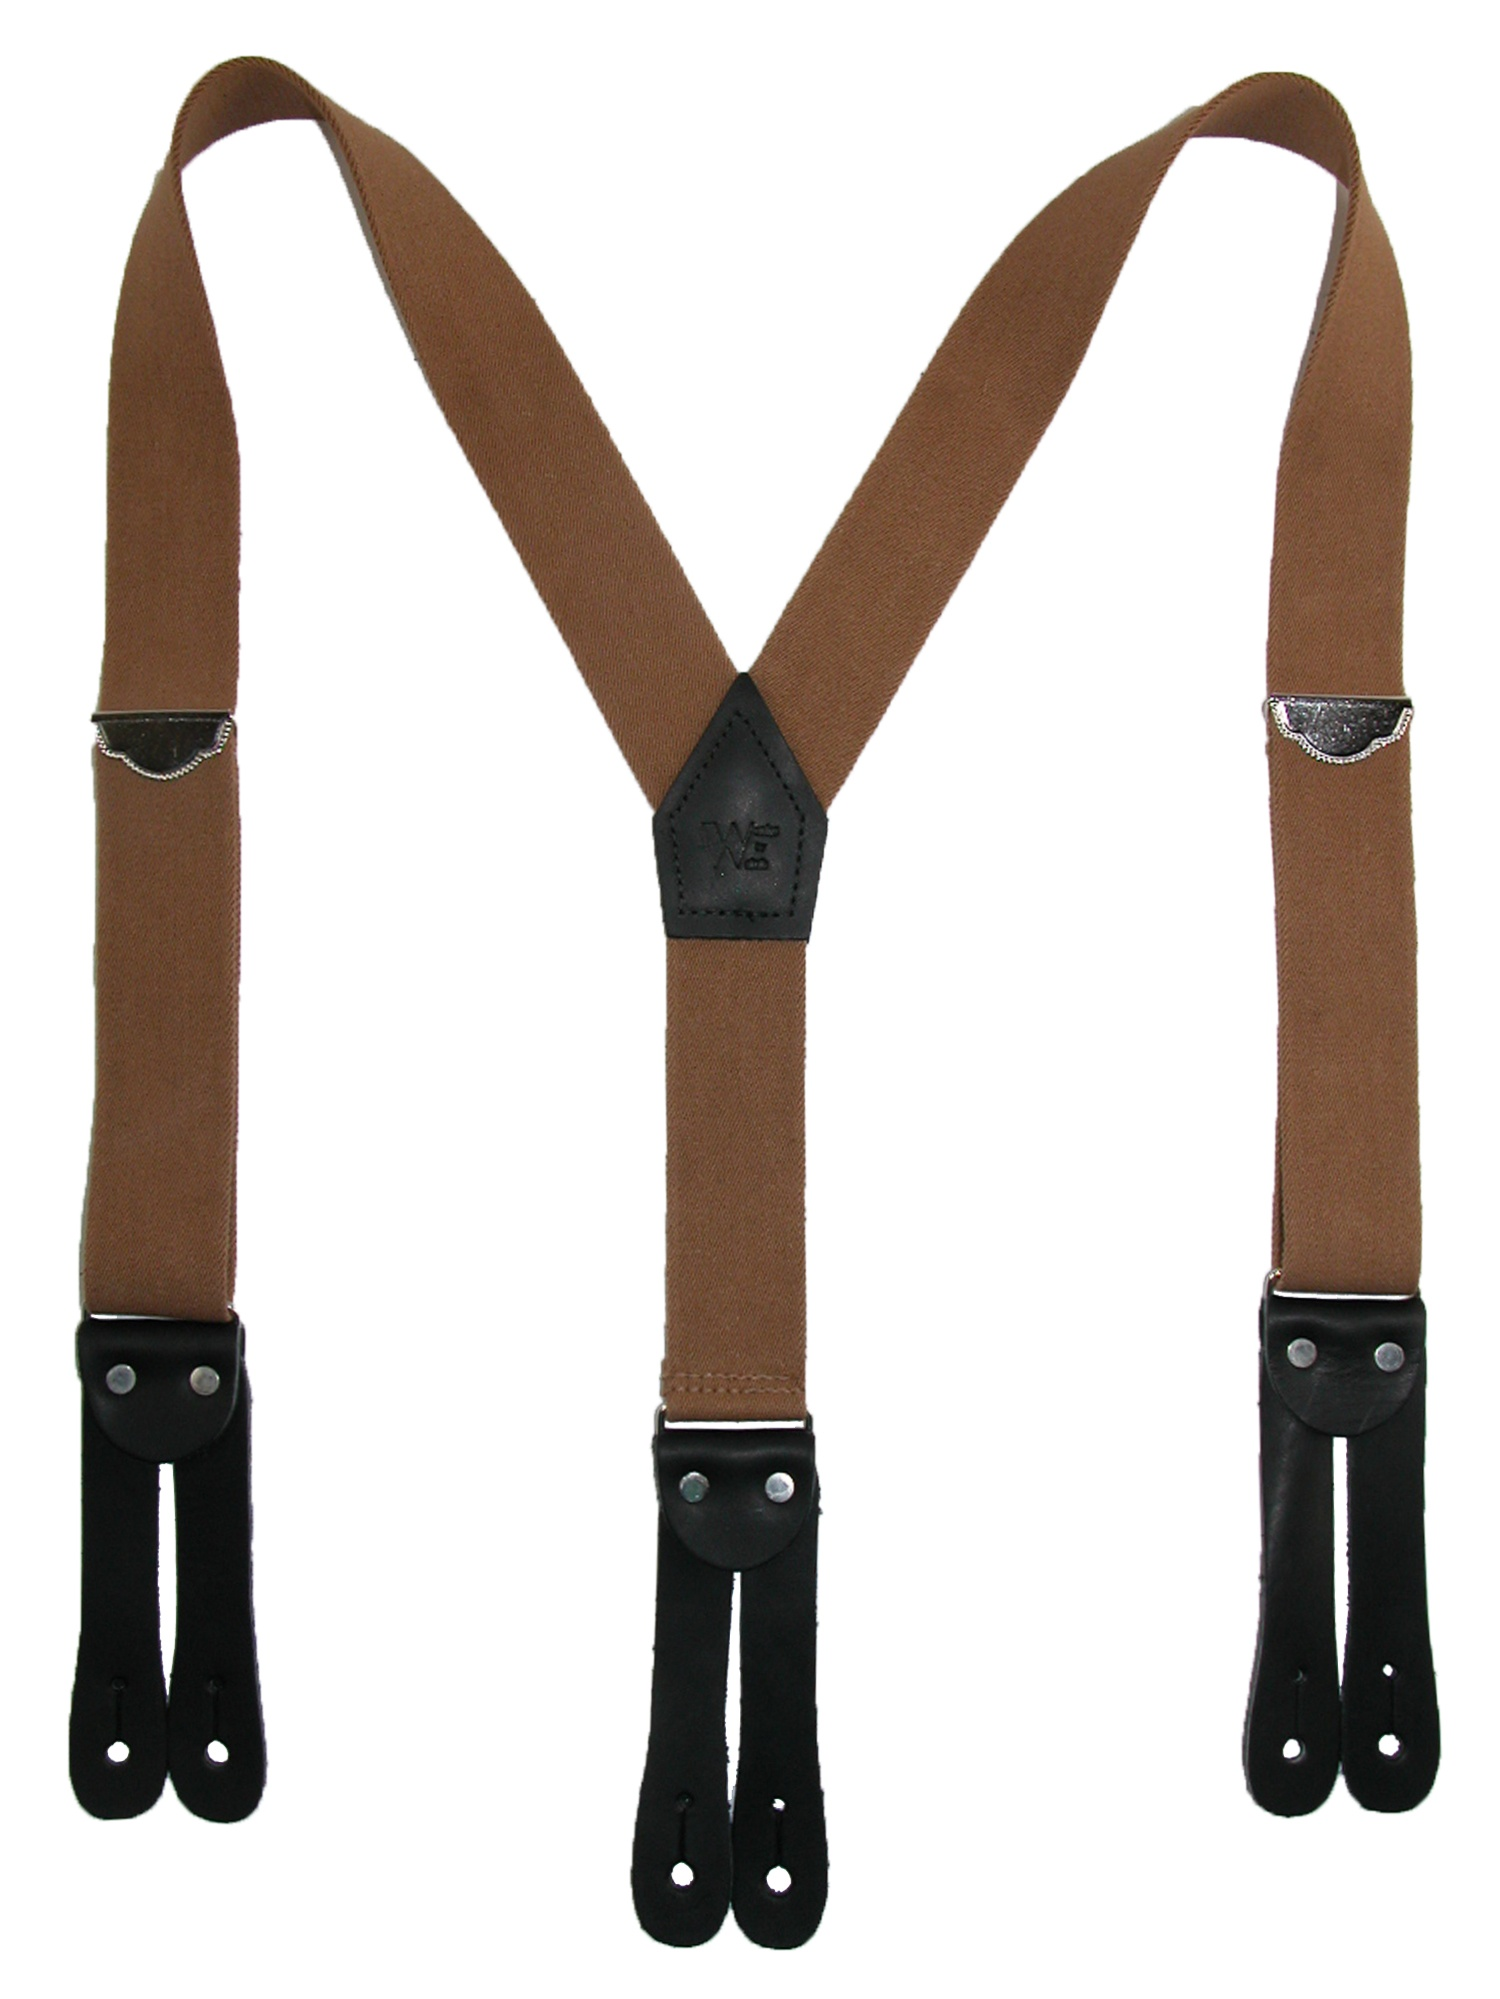 Mens Suspenders Adjustable Elastic Heavy Duty 1.4 Inch Wide X Shape 3 Strong Clips Suspender Braces Beige